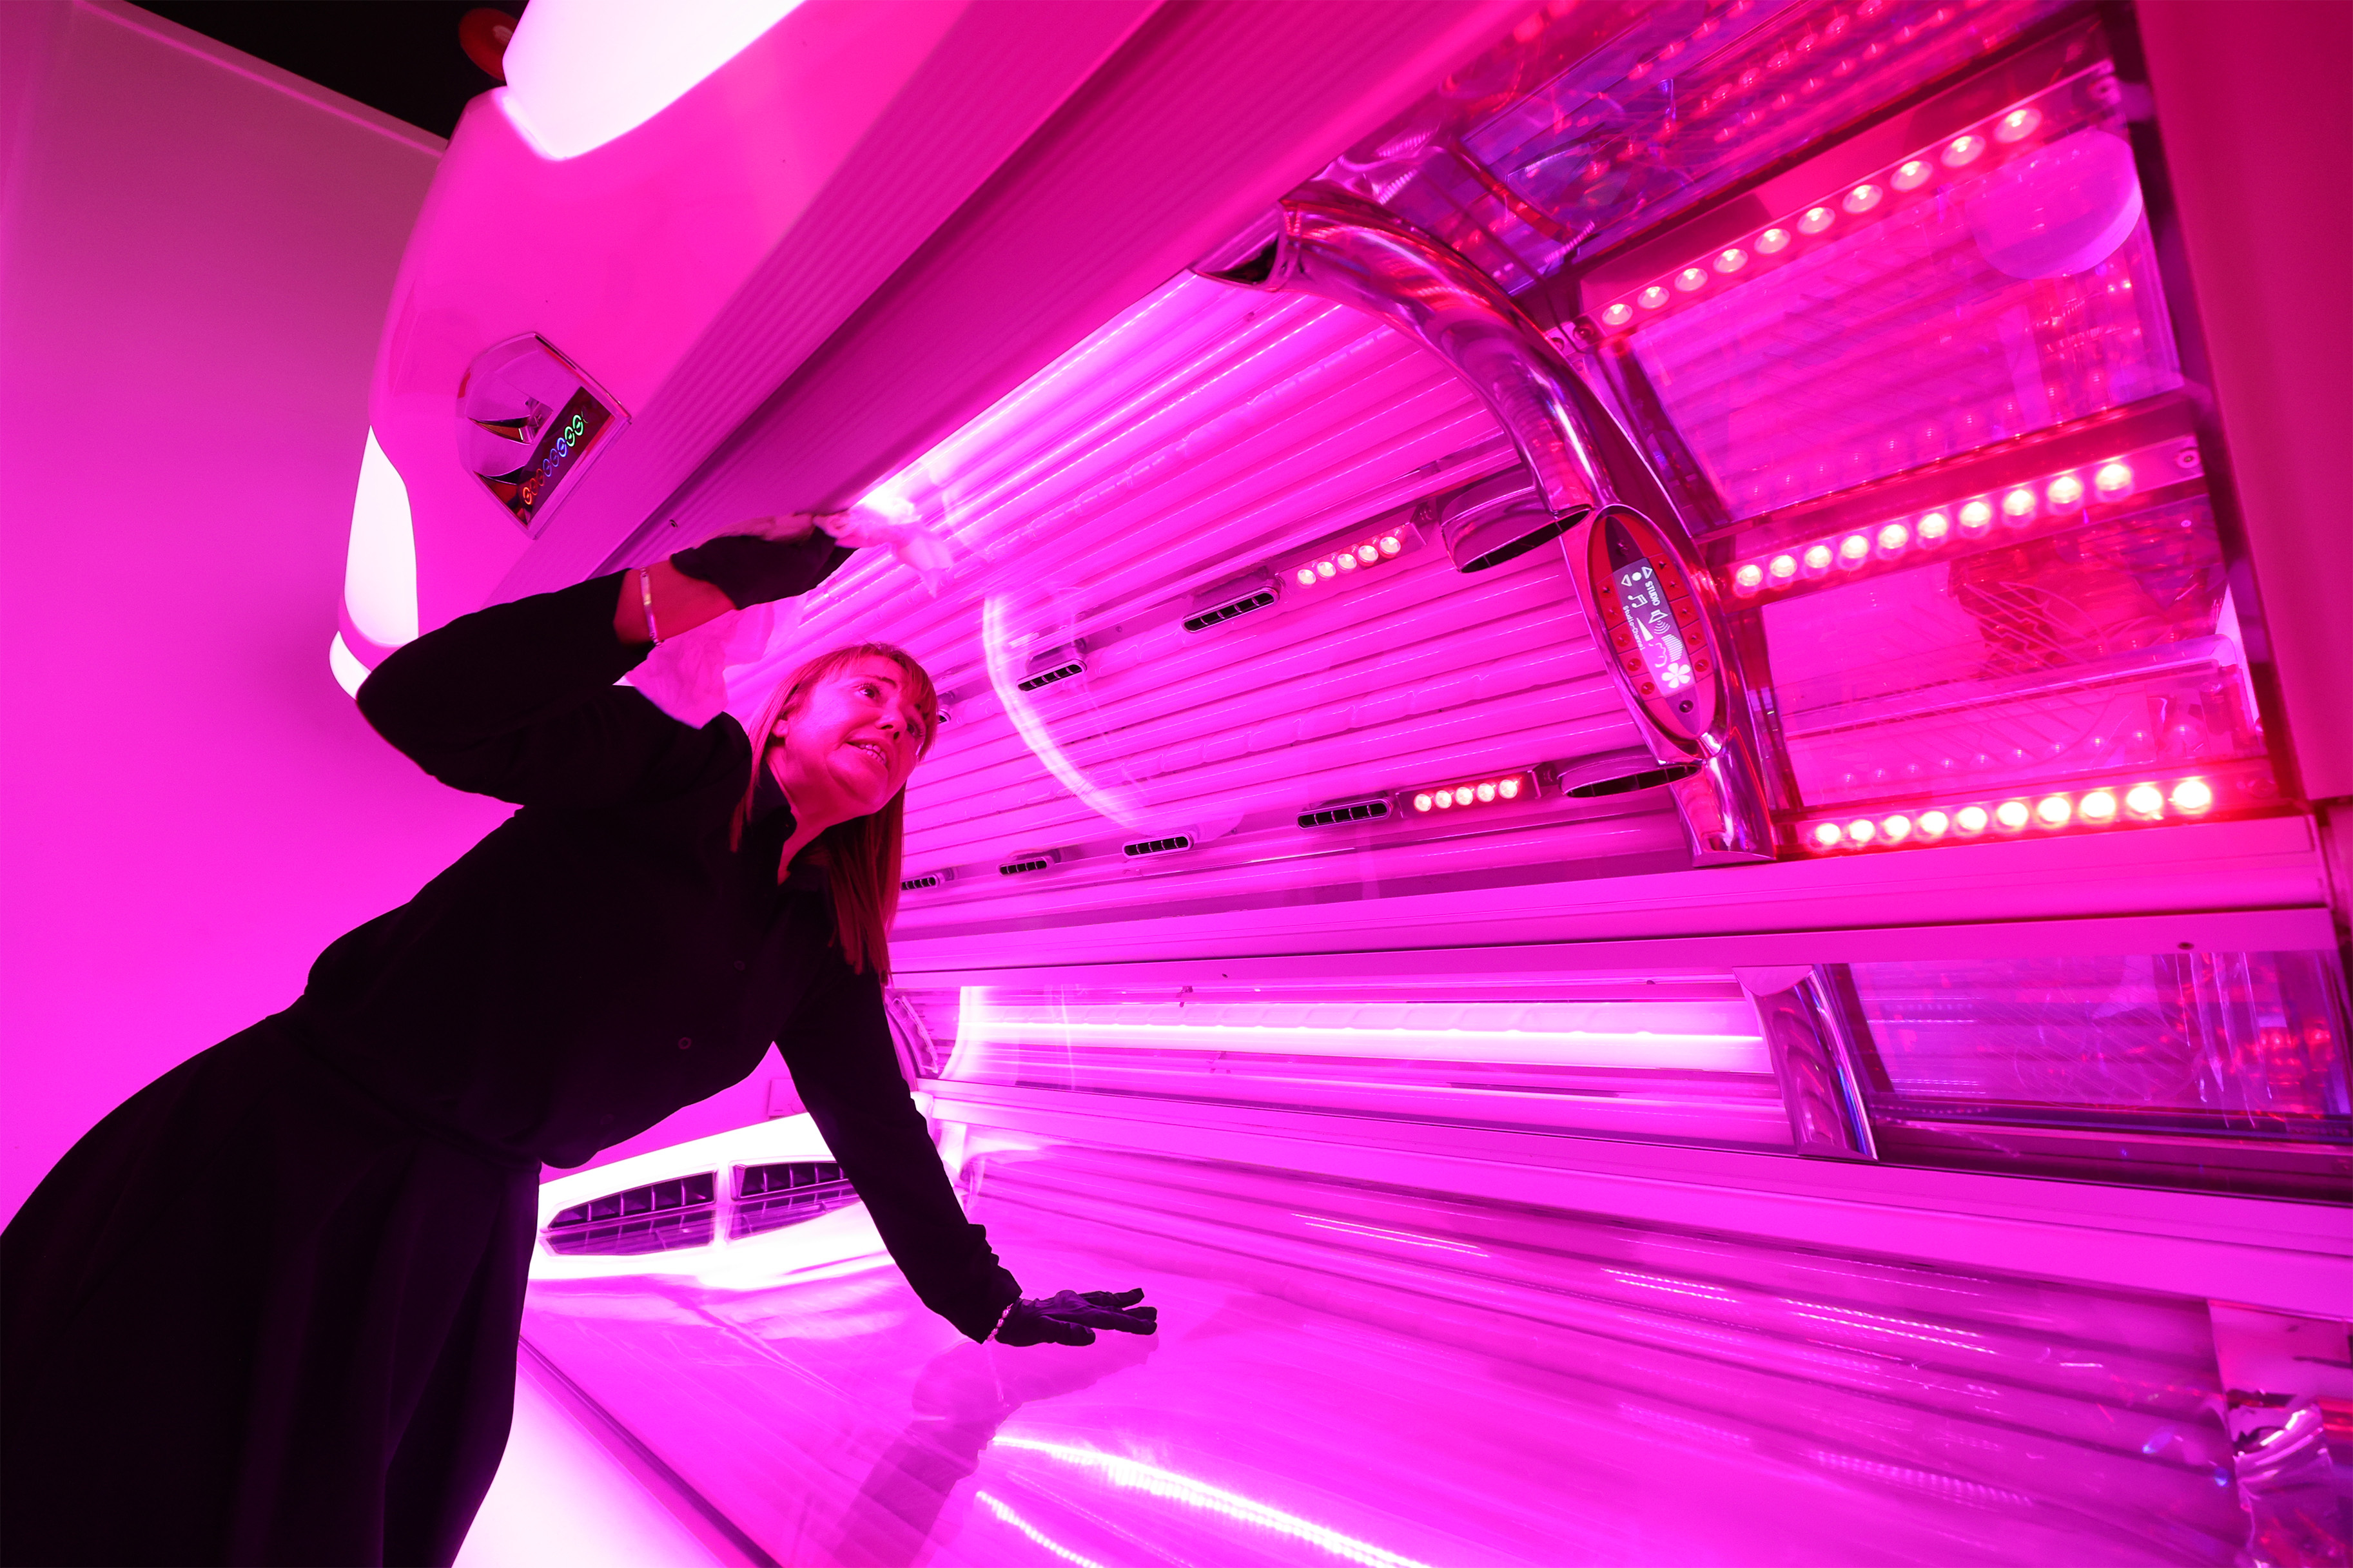 Manager of the store Kerry-Anne Walker sanitises a sunbed at The Tanning Shop on the Isle of Dogs, east London, as they reopen to customers following the easing of lockdown restrictions in England (Photo by Yui Mok/PA Images via Getty Images)